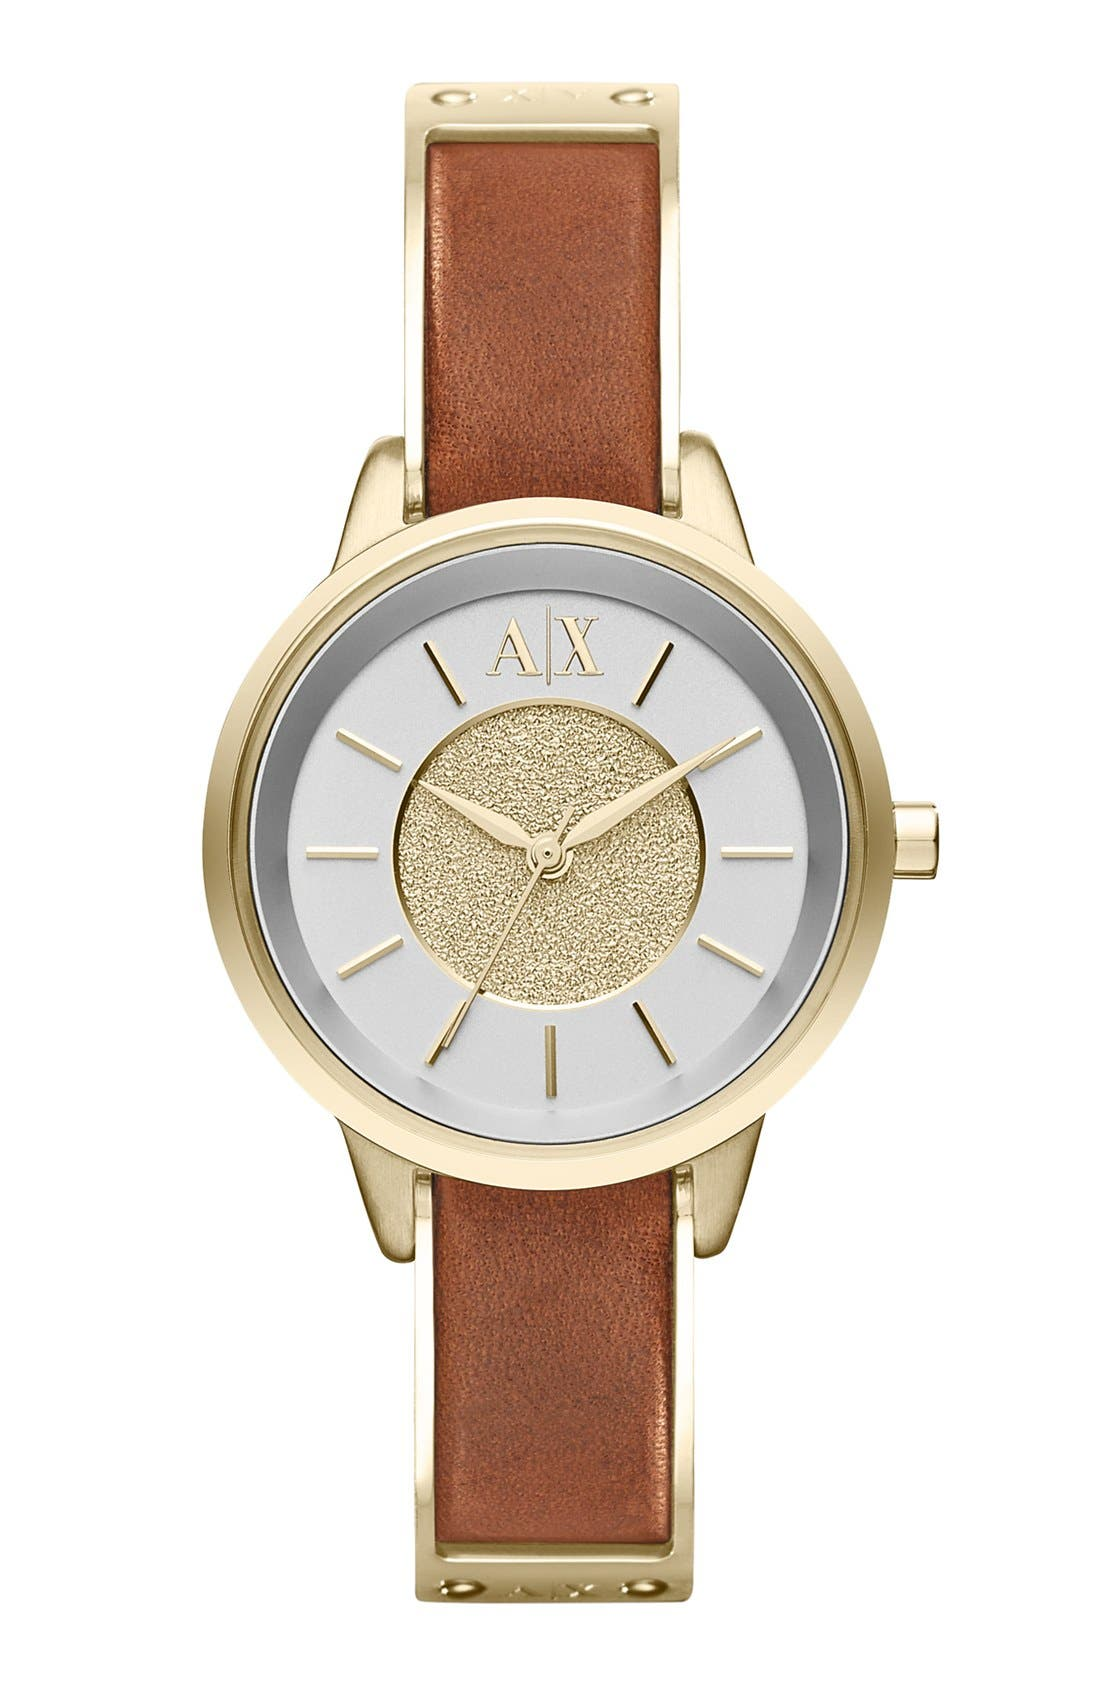 Main Image - AX Armani Exchange Round Leather Strap Watch, 30mm